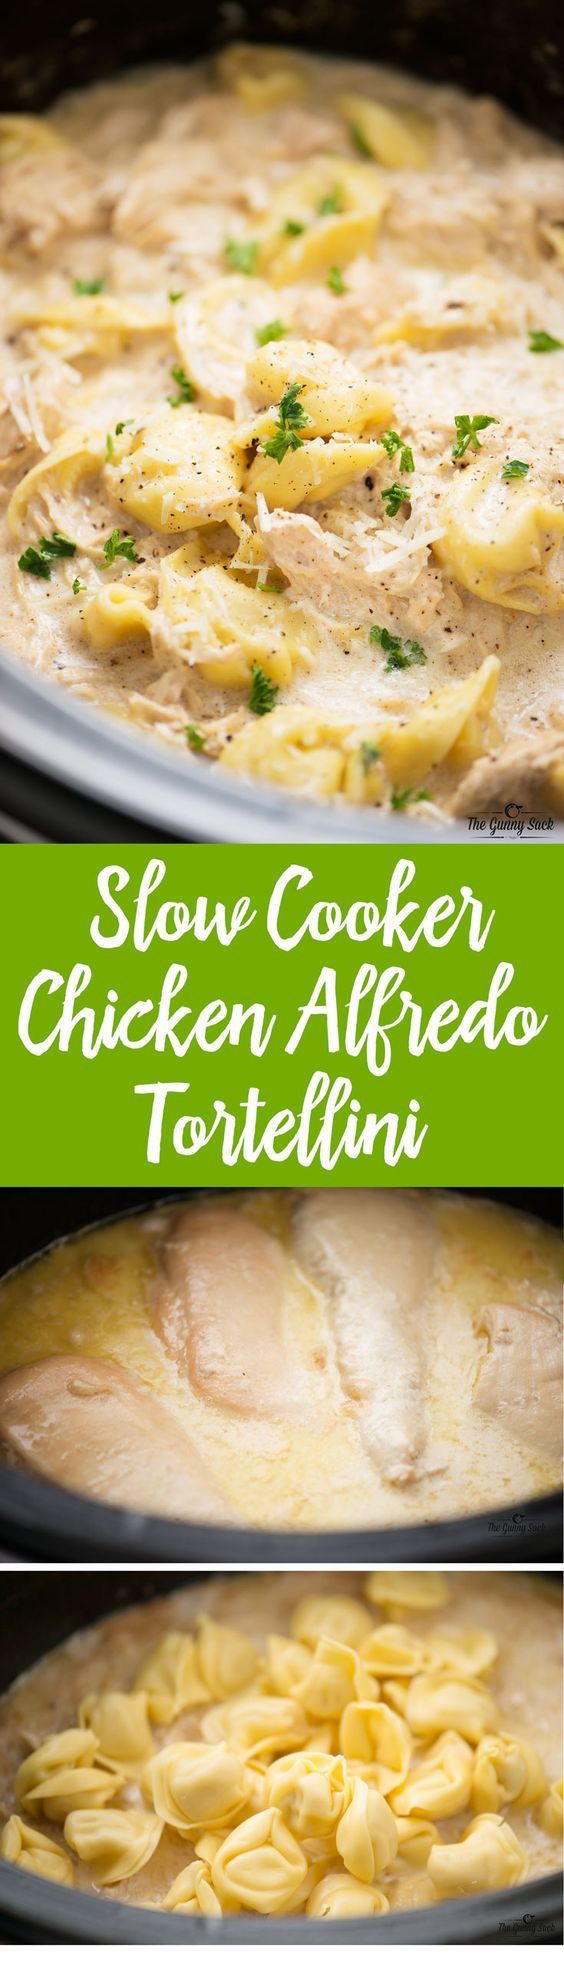 Slow Cooker Chicken Alfredo Tortellini is warm and comforting on a cold winter night. This easy, cheesy dinner recipe is a family favorite!